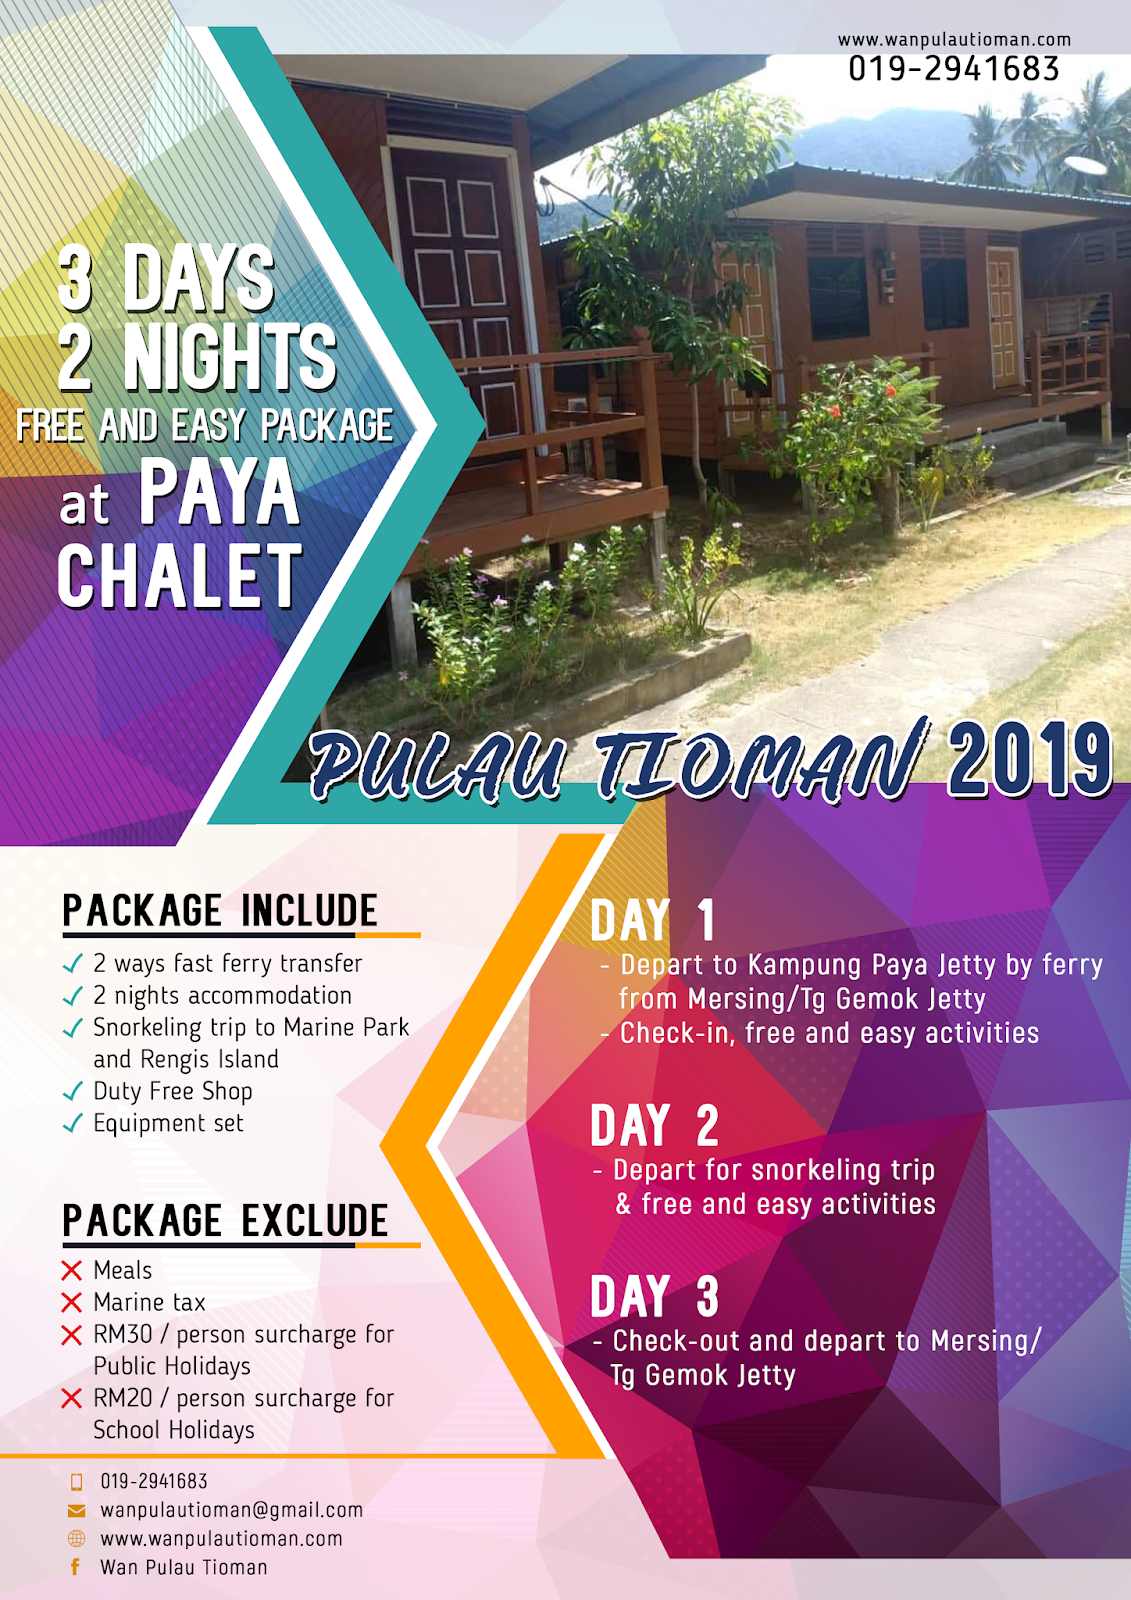 2019 3 Days 2 Nights Free and Easy Package at Paya Chalet - Pulau Tioman Malaysia